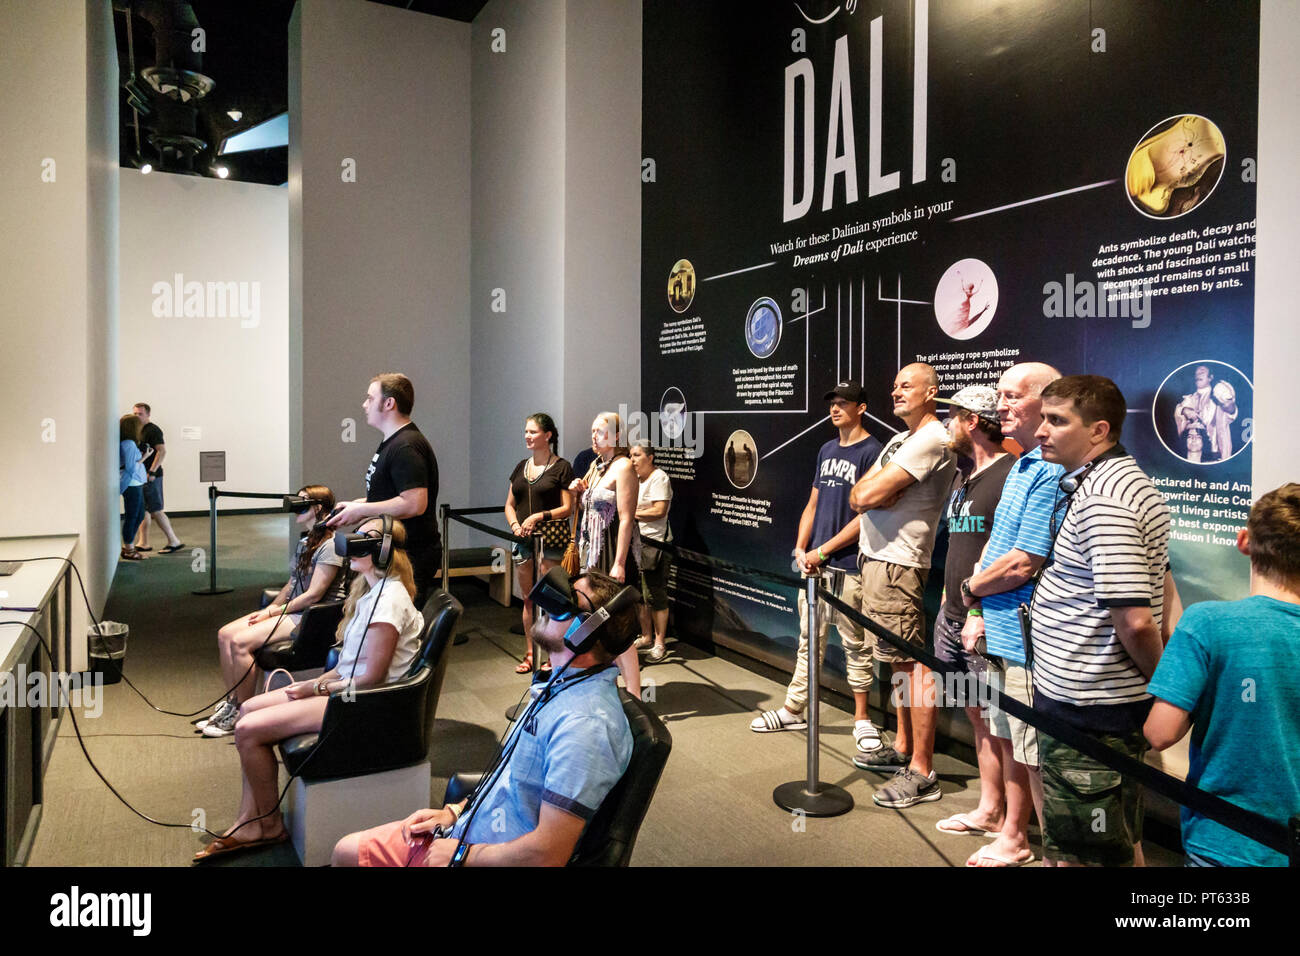 St. Saint Petersburg Florida Salvador Dali Museum surrealist art interior virtual reality line queue - Stock Image